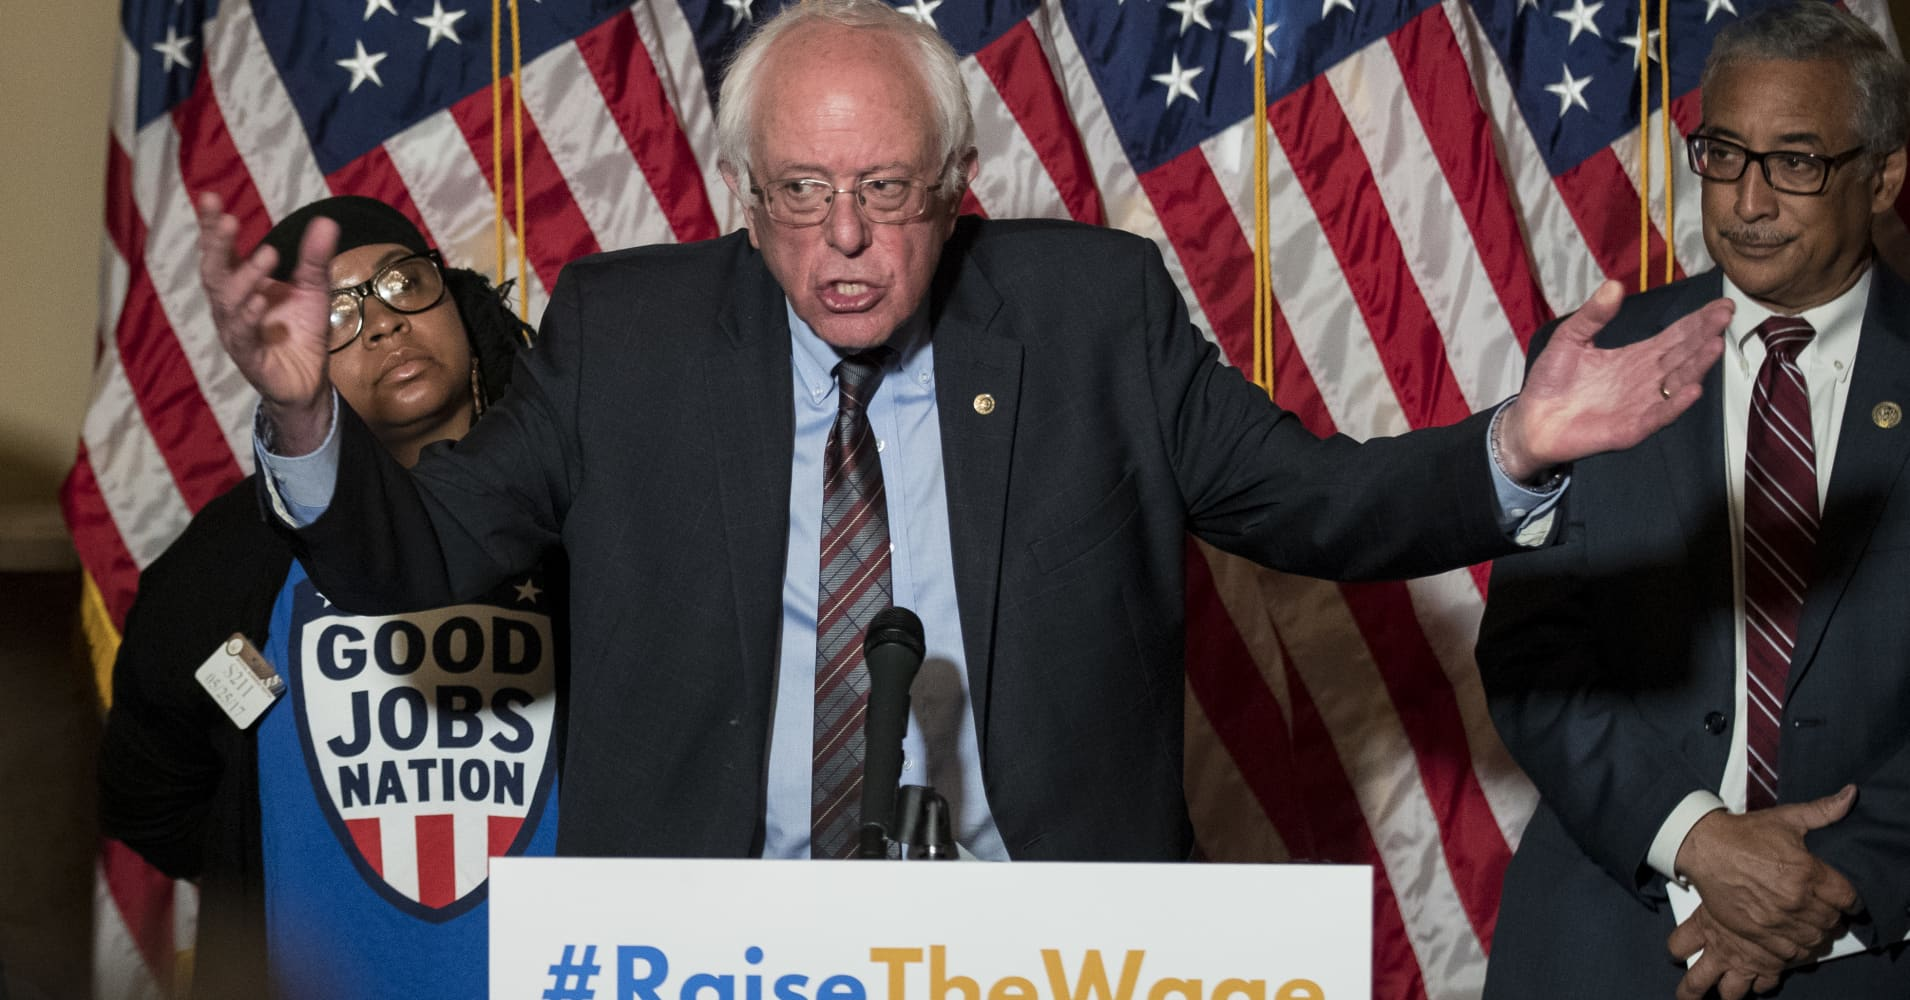 Bernie Sanders targets Walmart, calls for $15 minimum wage